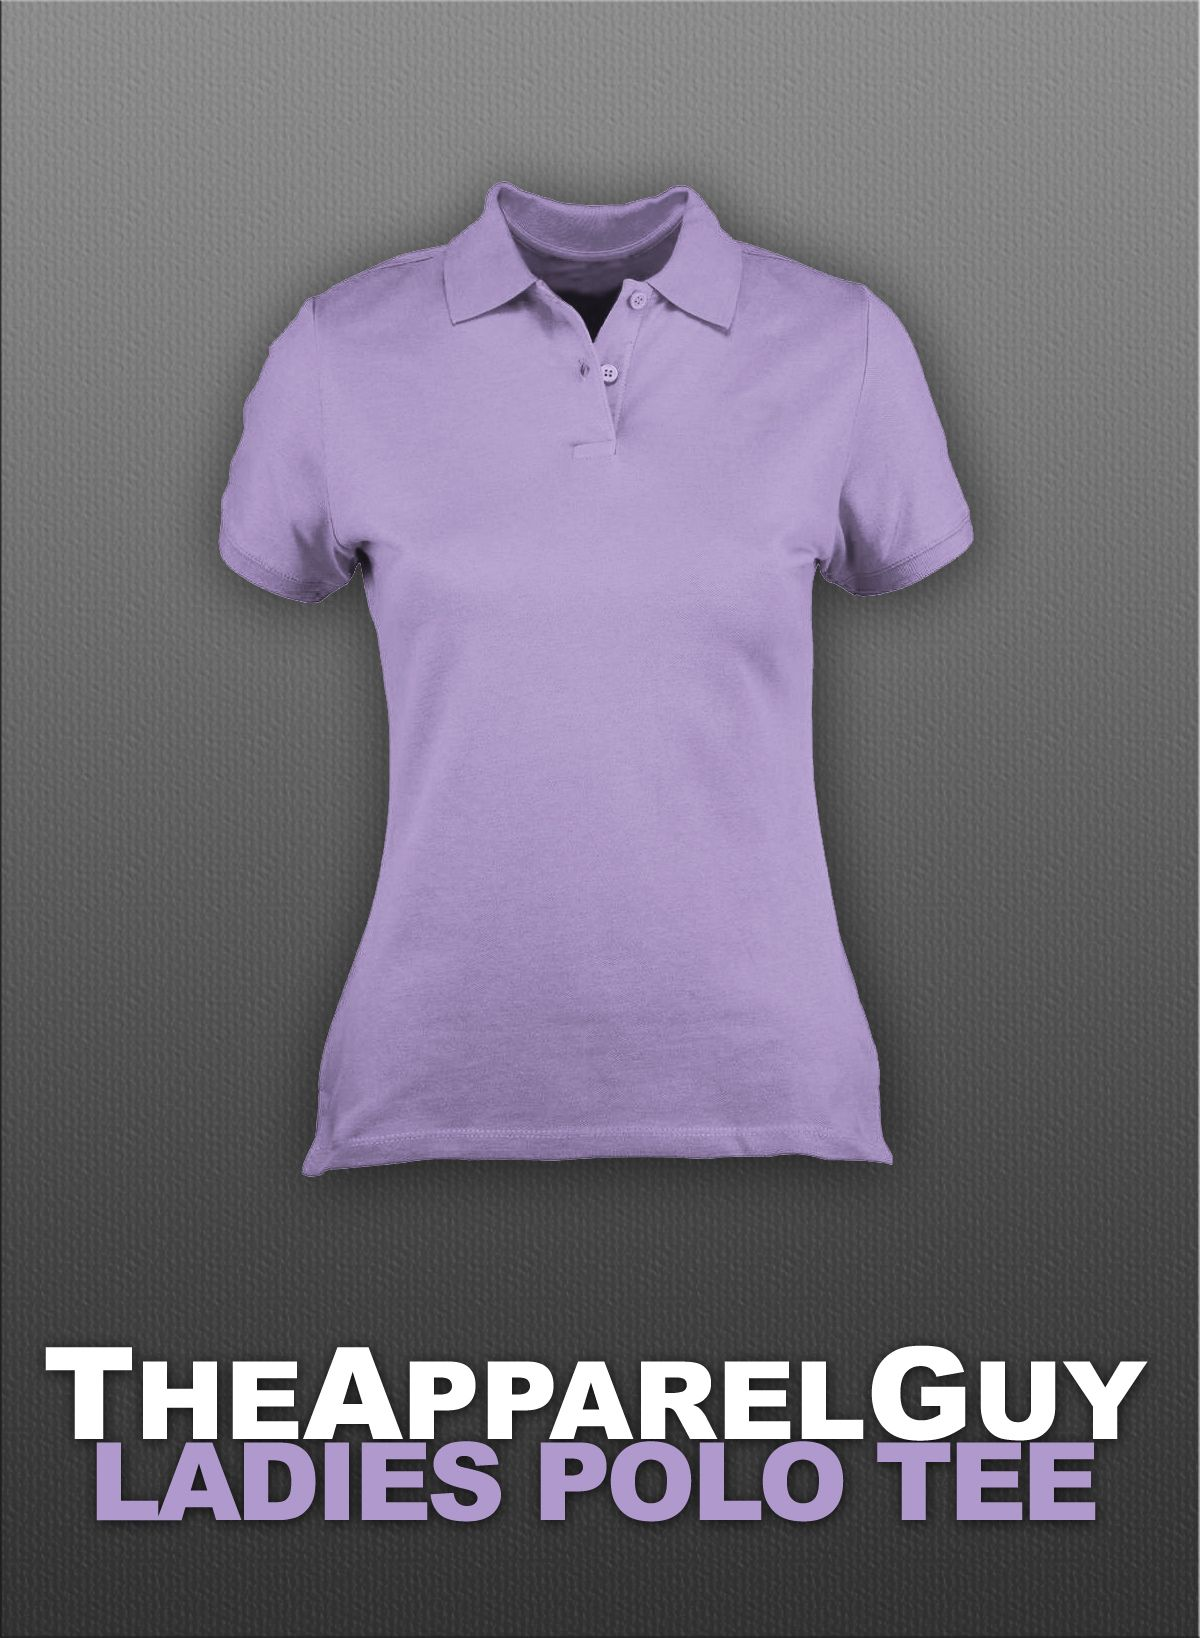 Polo T Shirt Mockup Front And Back Psd Free Ladies Polo Tee Psd By Theapparelguy On Deviantart Polo Shirt Women Polo Tees Tees